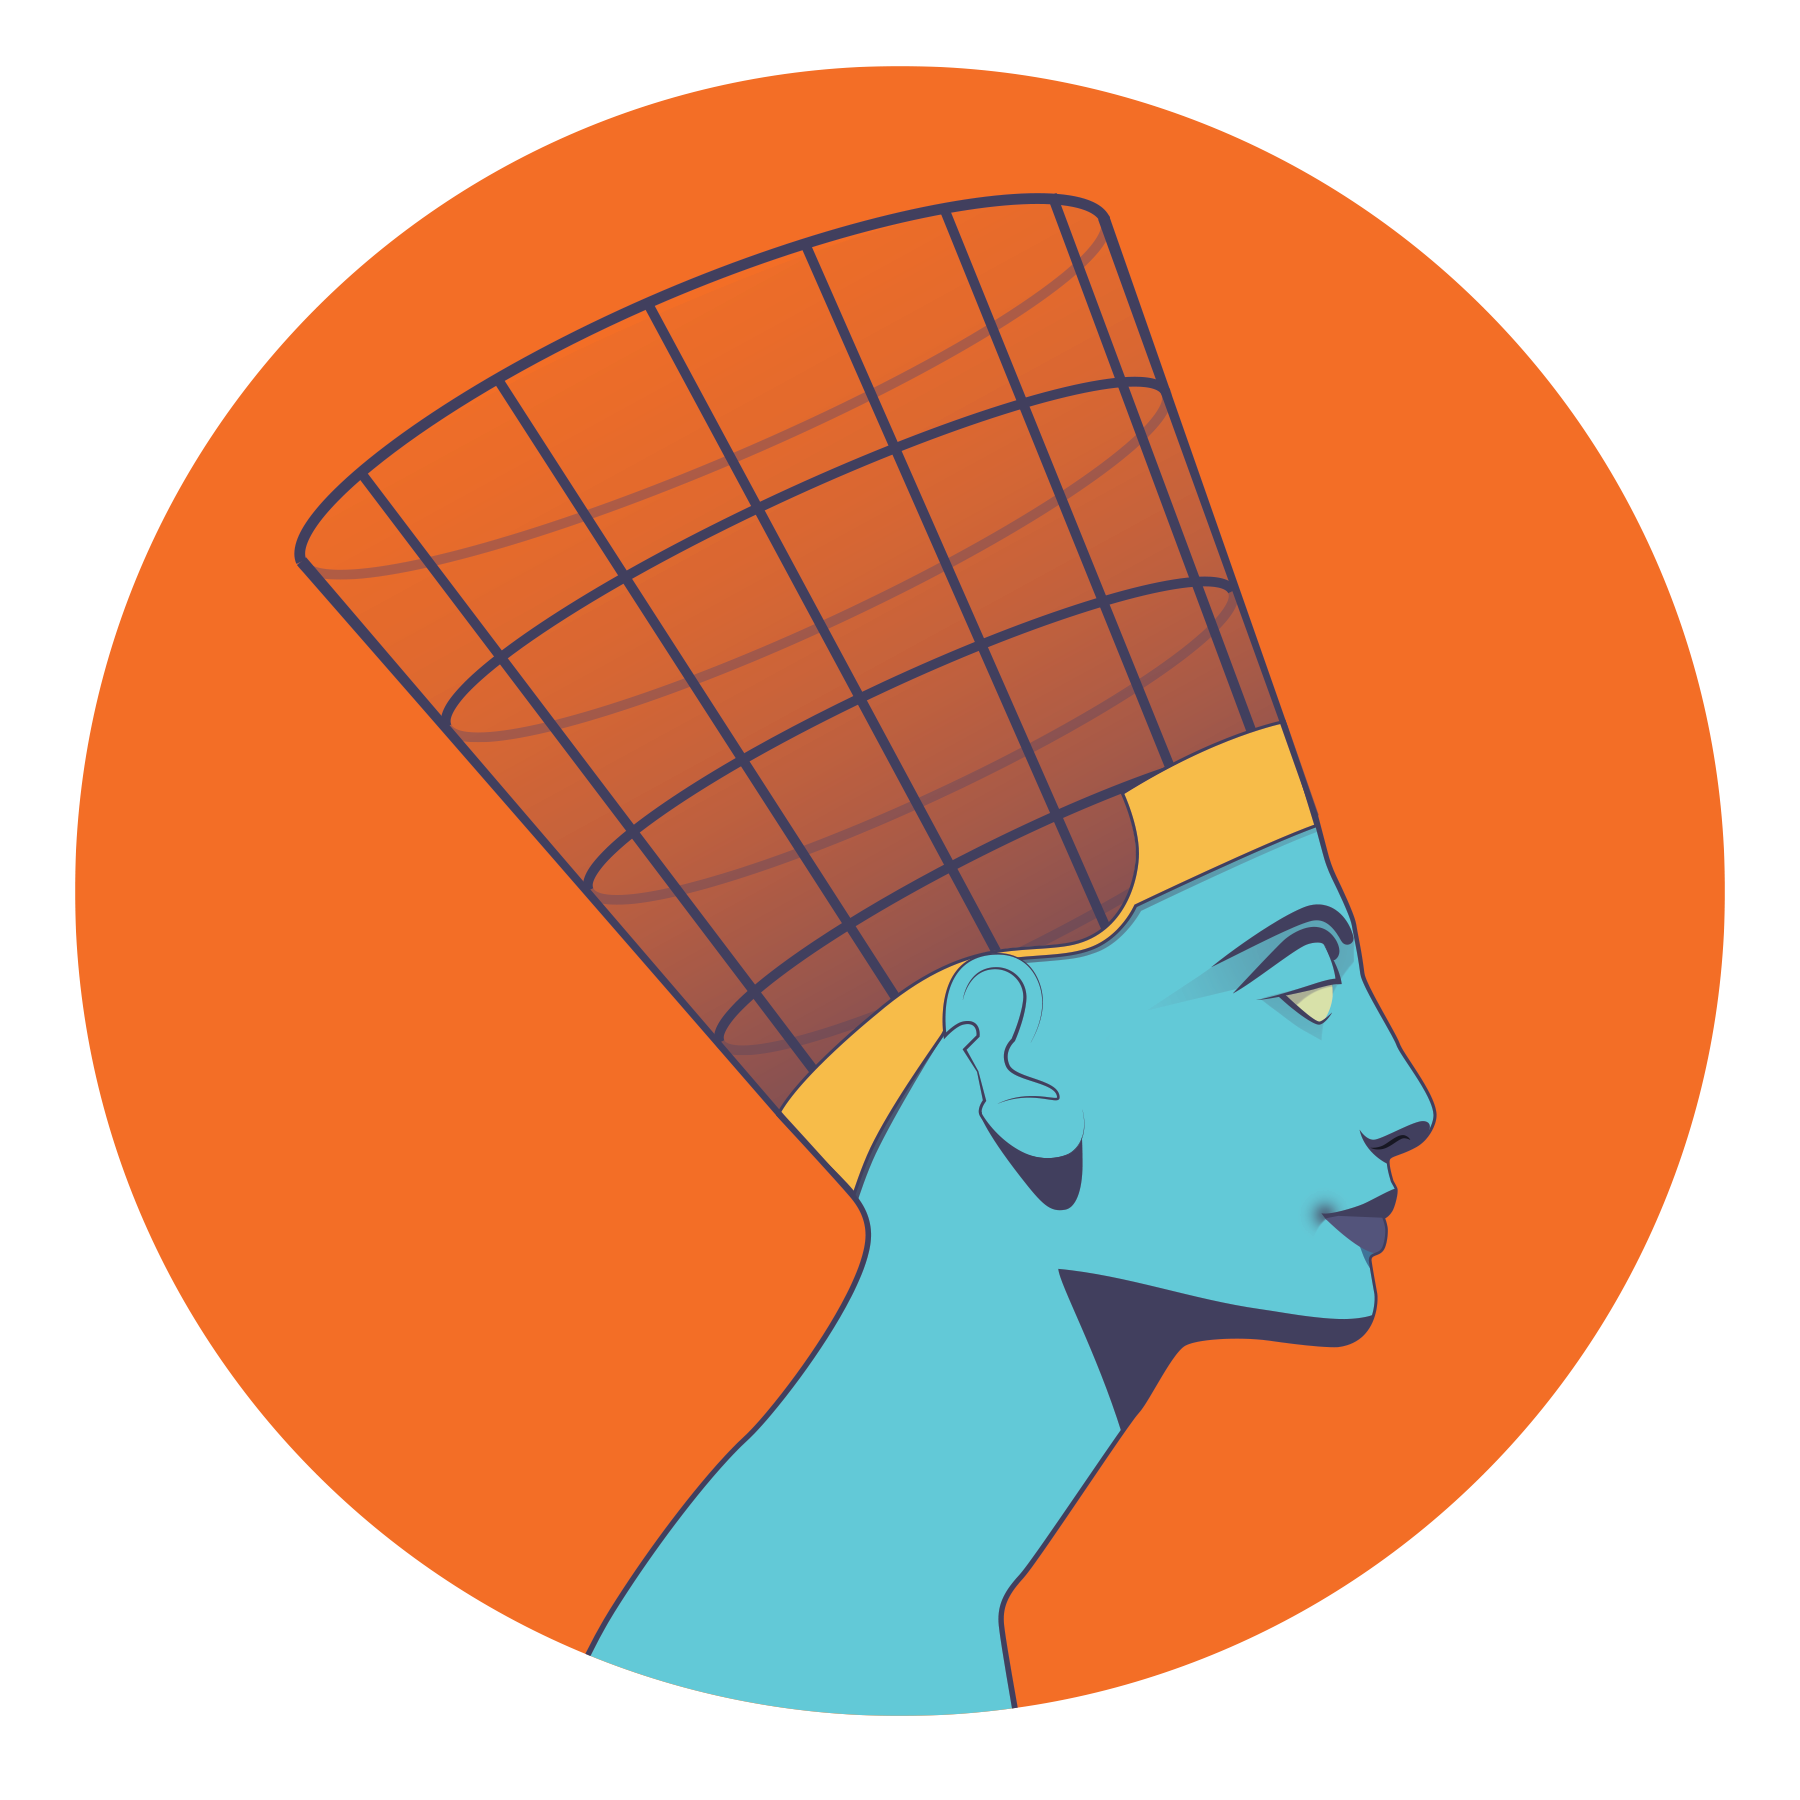 Illustration of the Nefertiti bust, with her crown being scanned